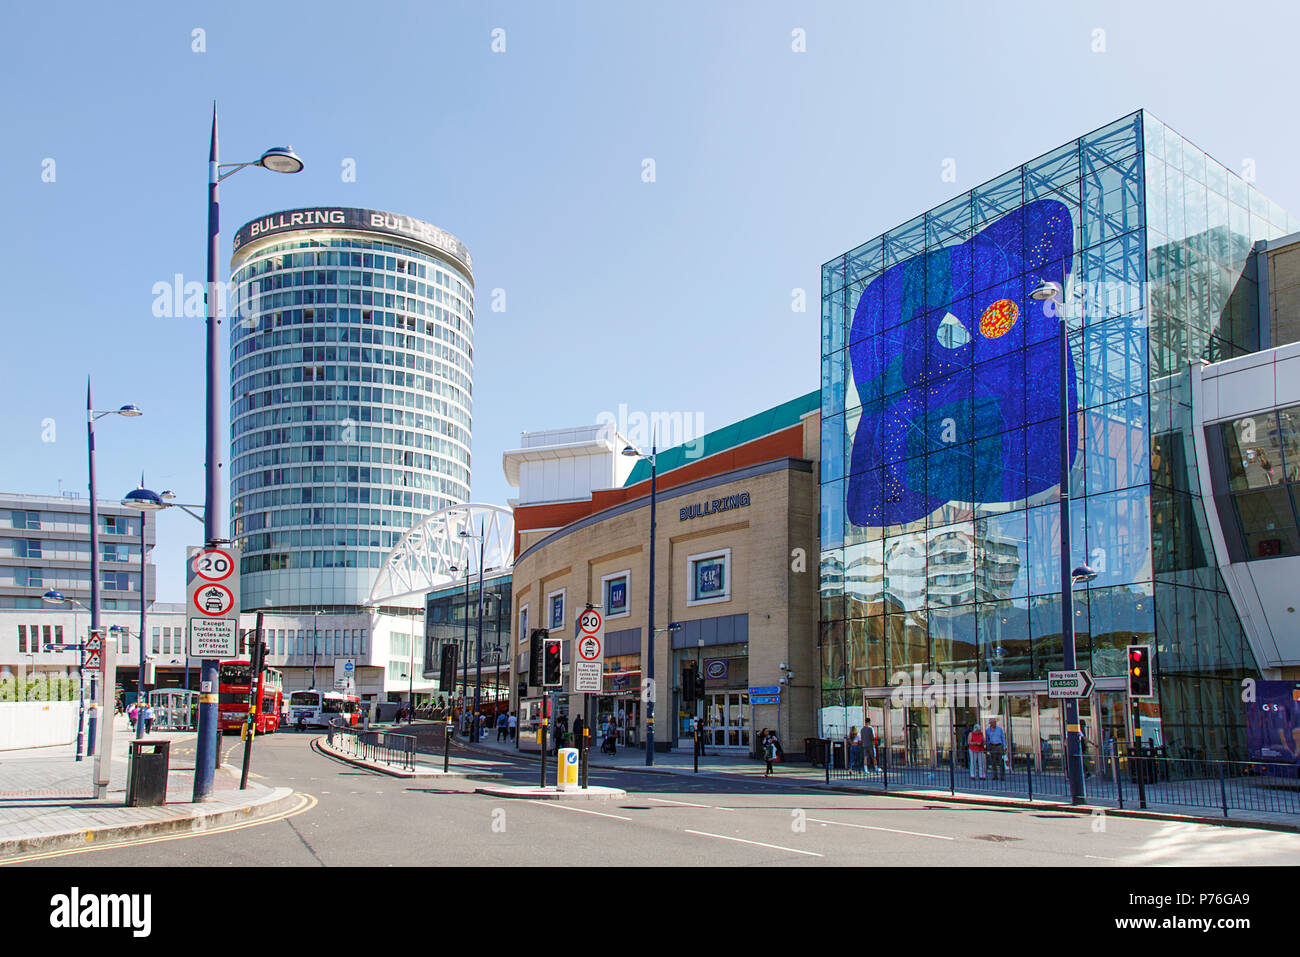 Birmingham, UK: June 29, 2018: The Bullring Shopping Centre - Birmingham. People crossing the road to Grand Central Station on Smallbrook Queensway. - Stock Image